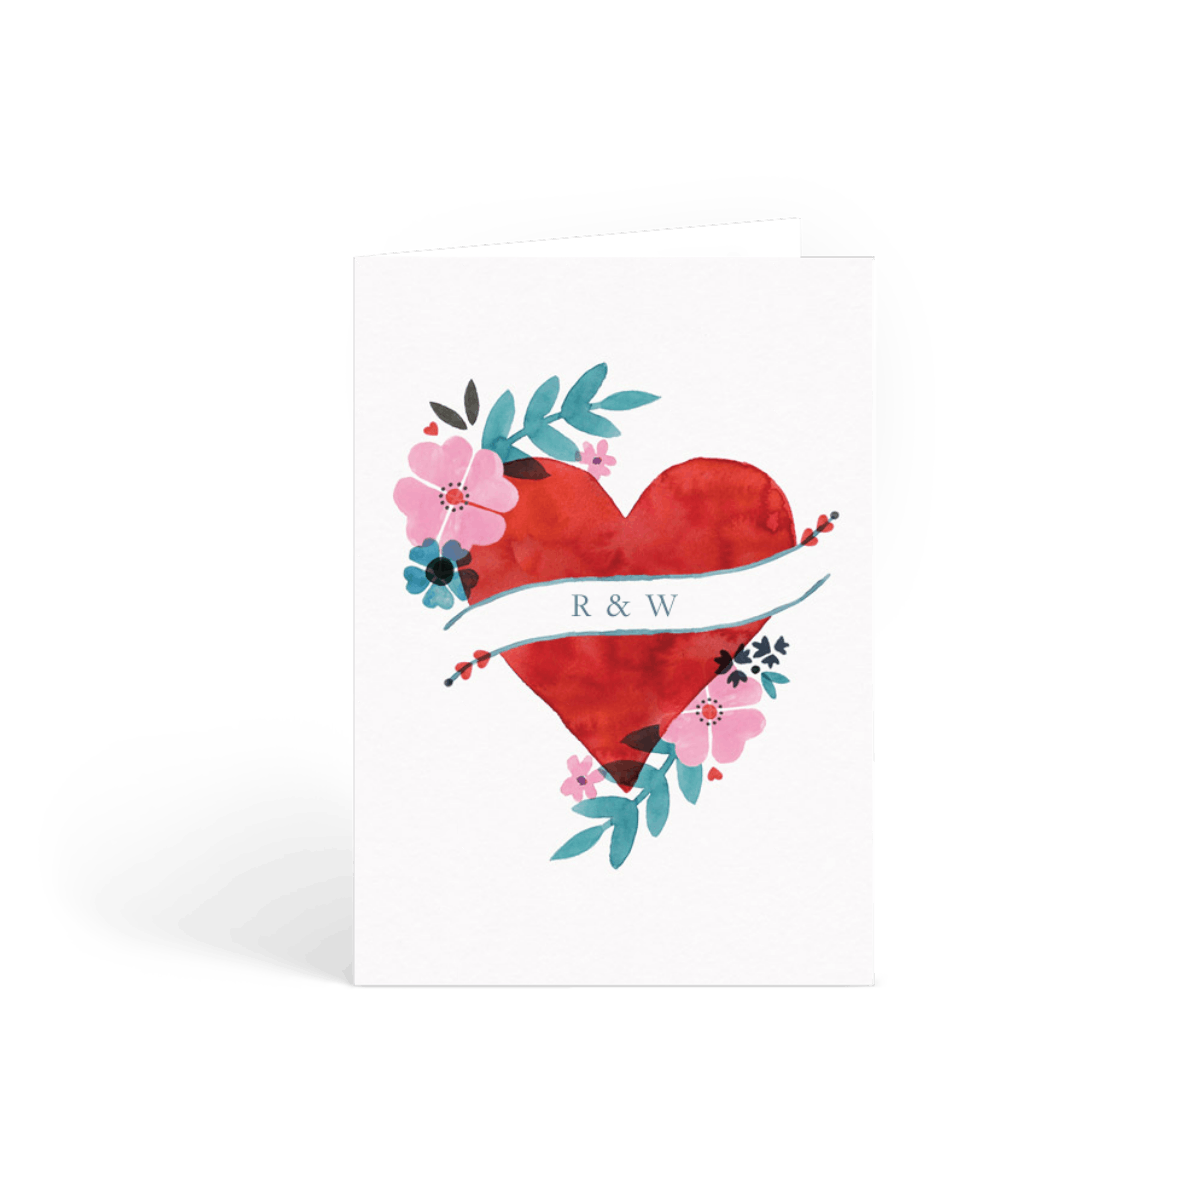 Https%3a%2f%2fwww.papier.com%2fproduct image%2f3920%2f2%2flove heart 1040 front 1579168617.png?ixlib=rb 1.1